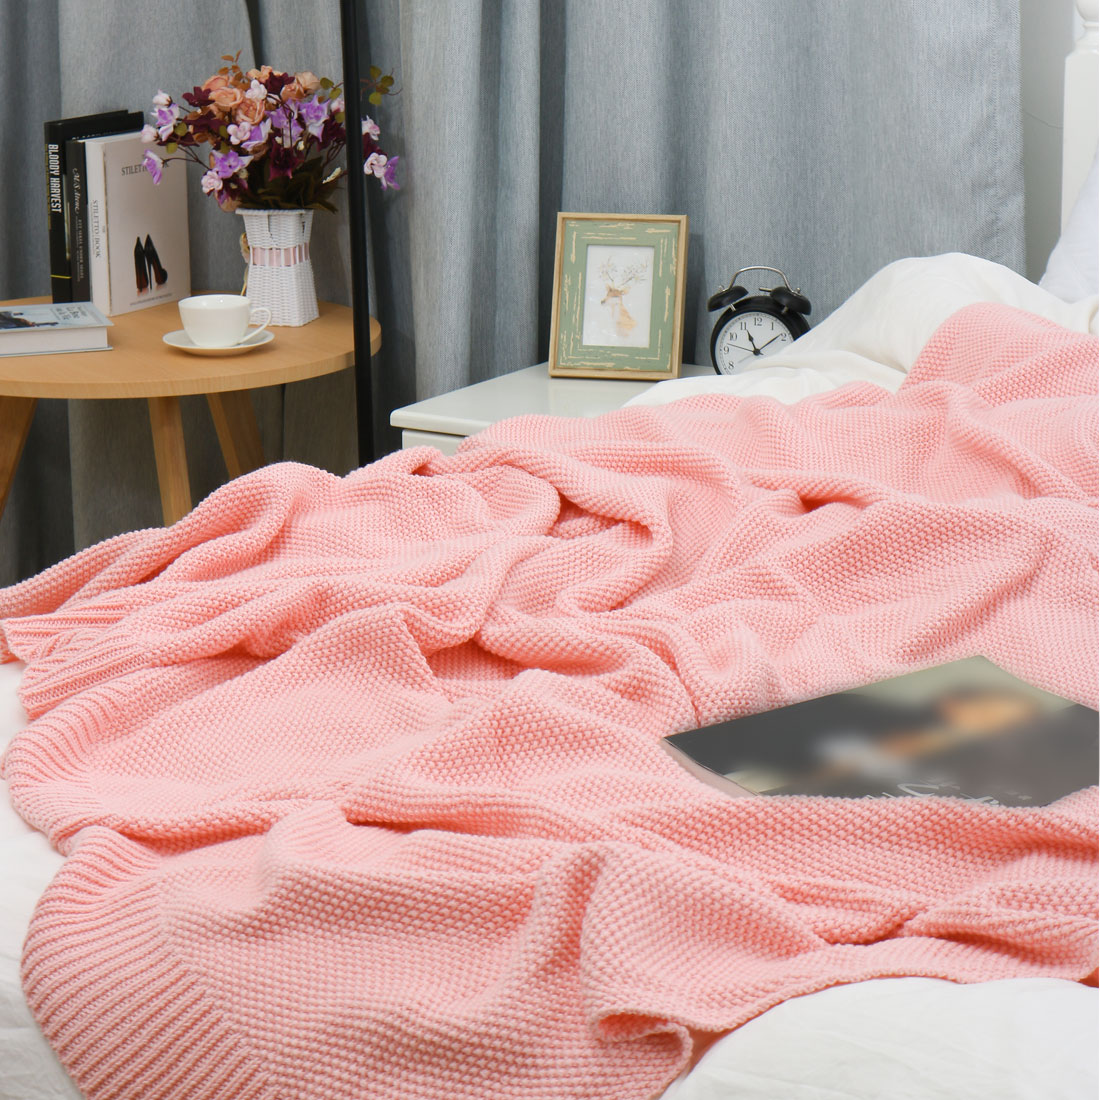 "100% Cotton Soft Warm Knit Throw Blanket Bed Sofa Home Decor 71"" x 79"" Pink - image 7 de 8"